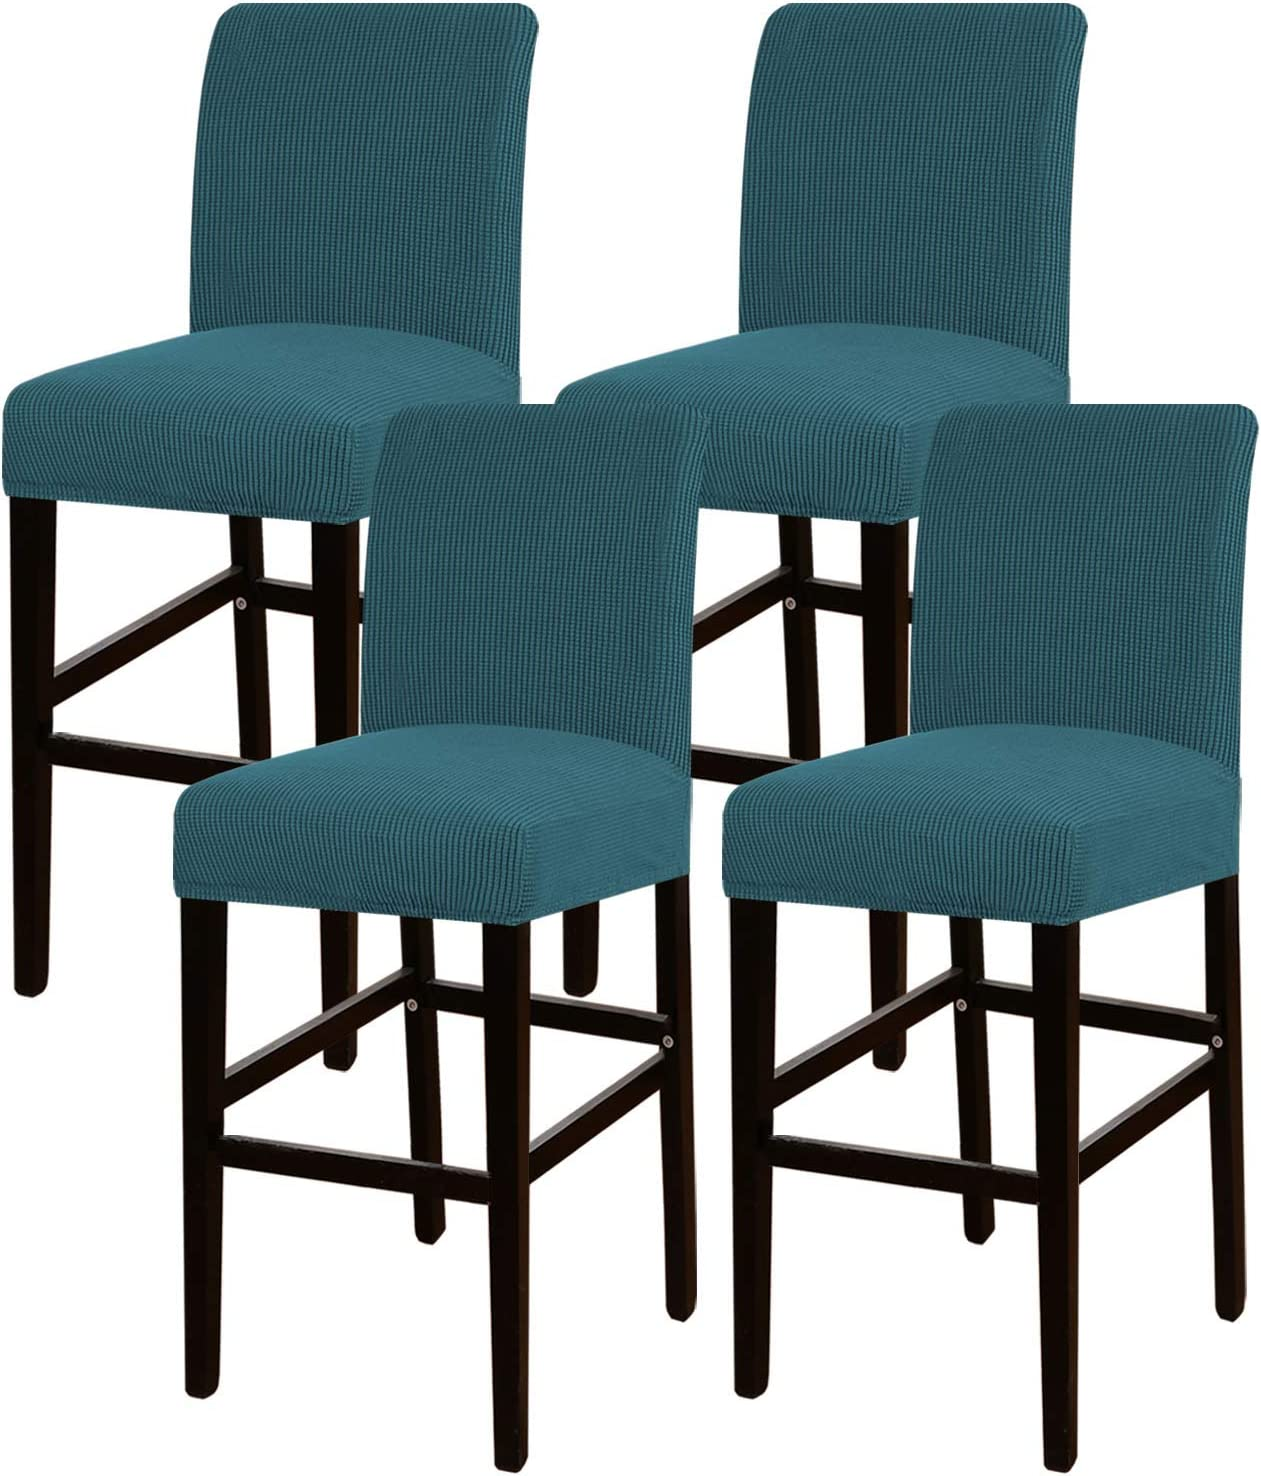 Turquoize Stretch Bar Stool Cover Counter Stool Pub Chair Slipcover for Dining Room Cafe Barstool Slipcover Removable Furniture Chair Seat Cover Jacquard Fabric With Elastic Bottom Set of 4, Deep Teal